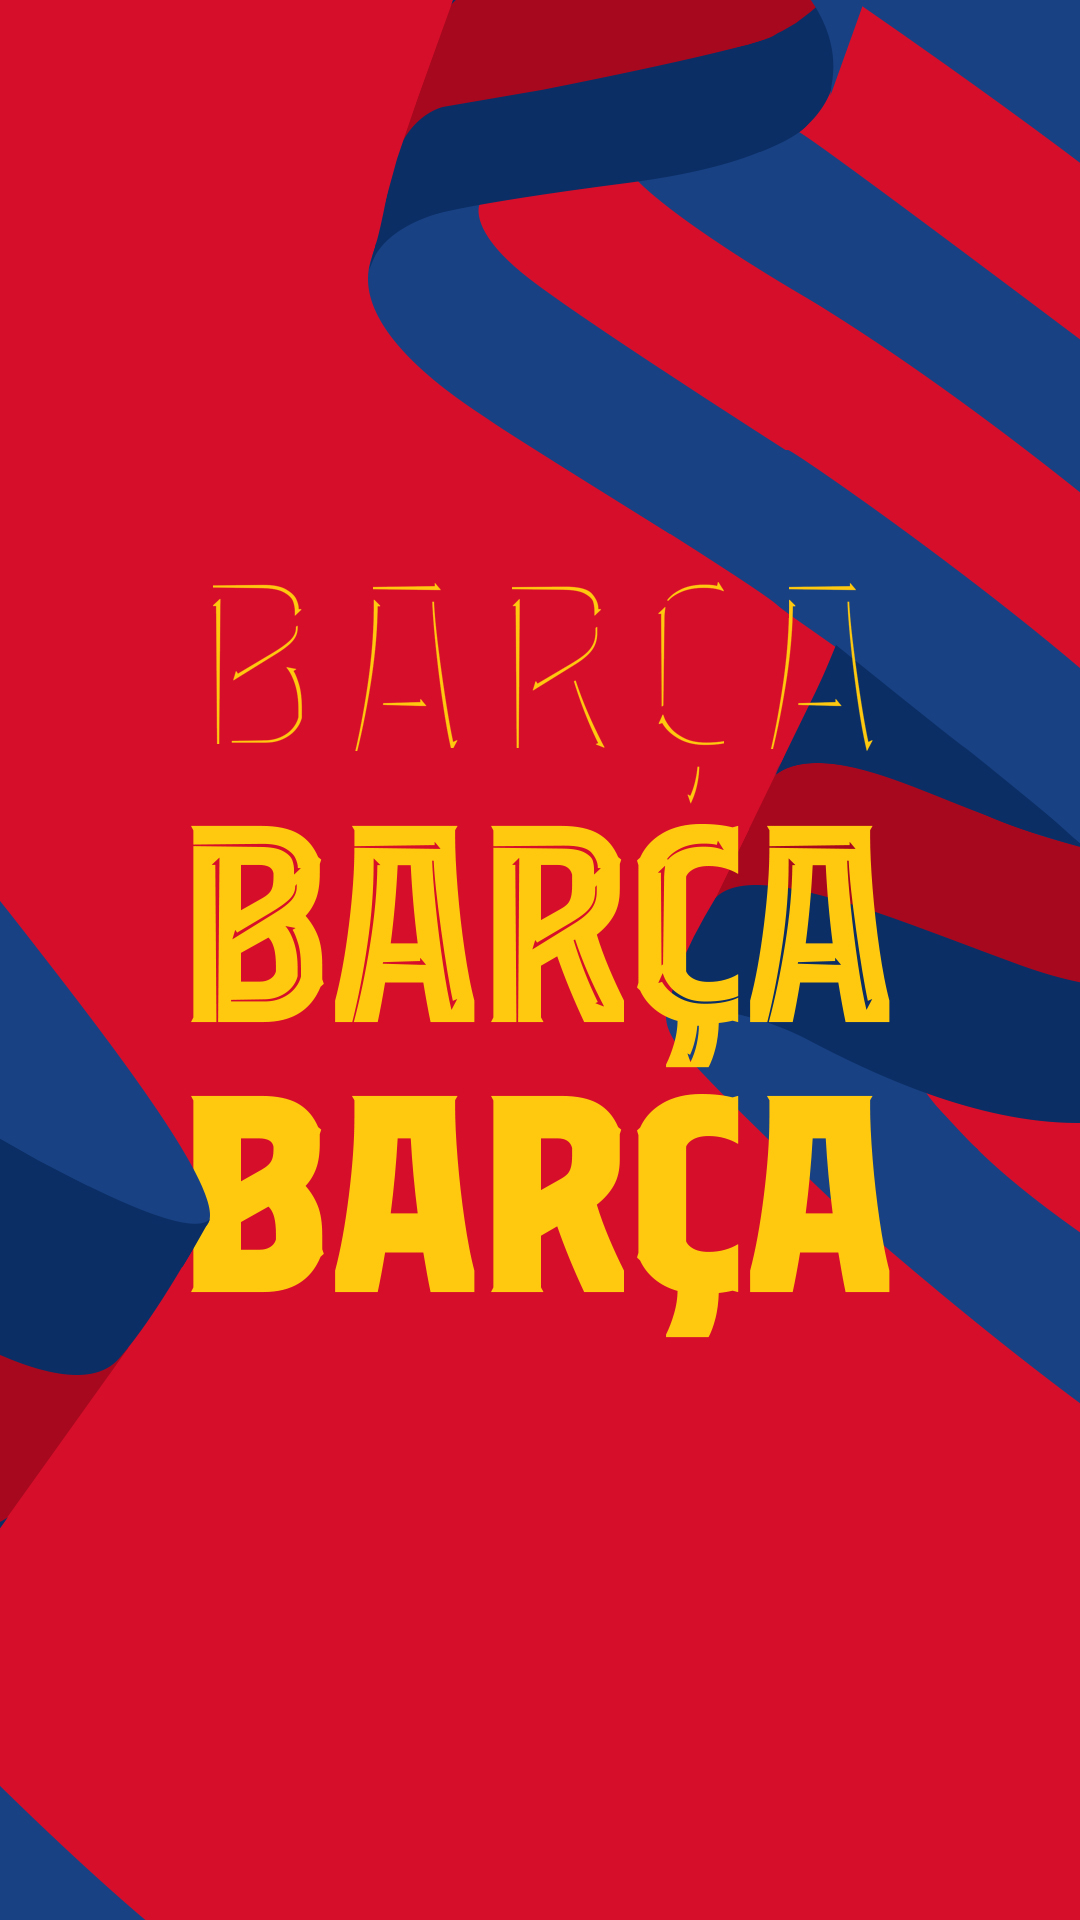 fc barcelona wallpaper 2021 4k by selvedinfcb on deviantart fc barcelona wallpaper 2021 4k by